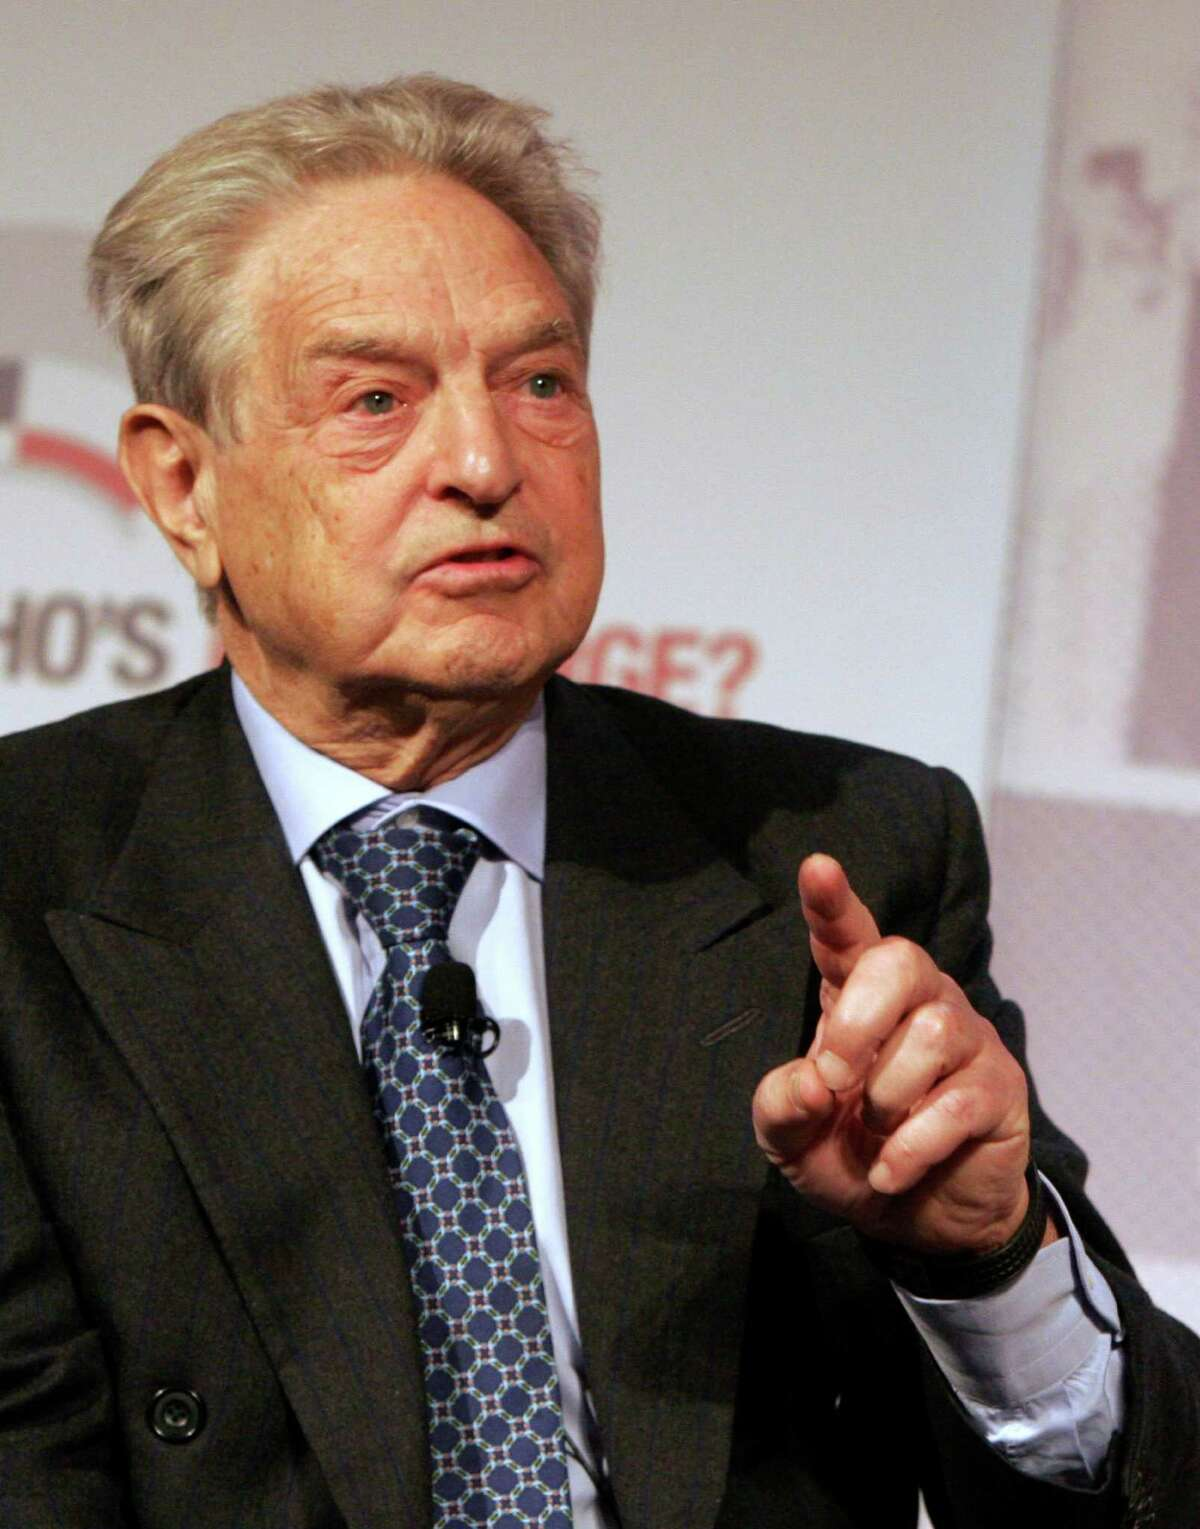 ** FILE ** In this Jan. 23, 2008 file photo, Chairman of the Soros Fund Management, USA, George Soros, pauses before speaking during a seminar at the World Economic Forum in Davos, Switzerland. A measure that would decriminalize minor marijuana-possession cases is on the ballot in Massachusetts largely because of Soros. Of the $429,000 collected last year by the group advancing the measure, $400,000 came from Soros, who has championed similar efforts in several states. (AP Photo/Virginia Mayo, File)